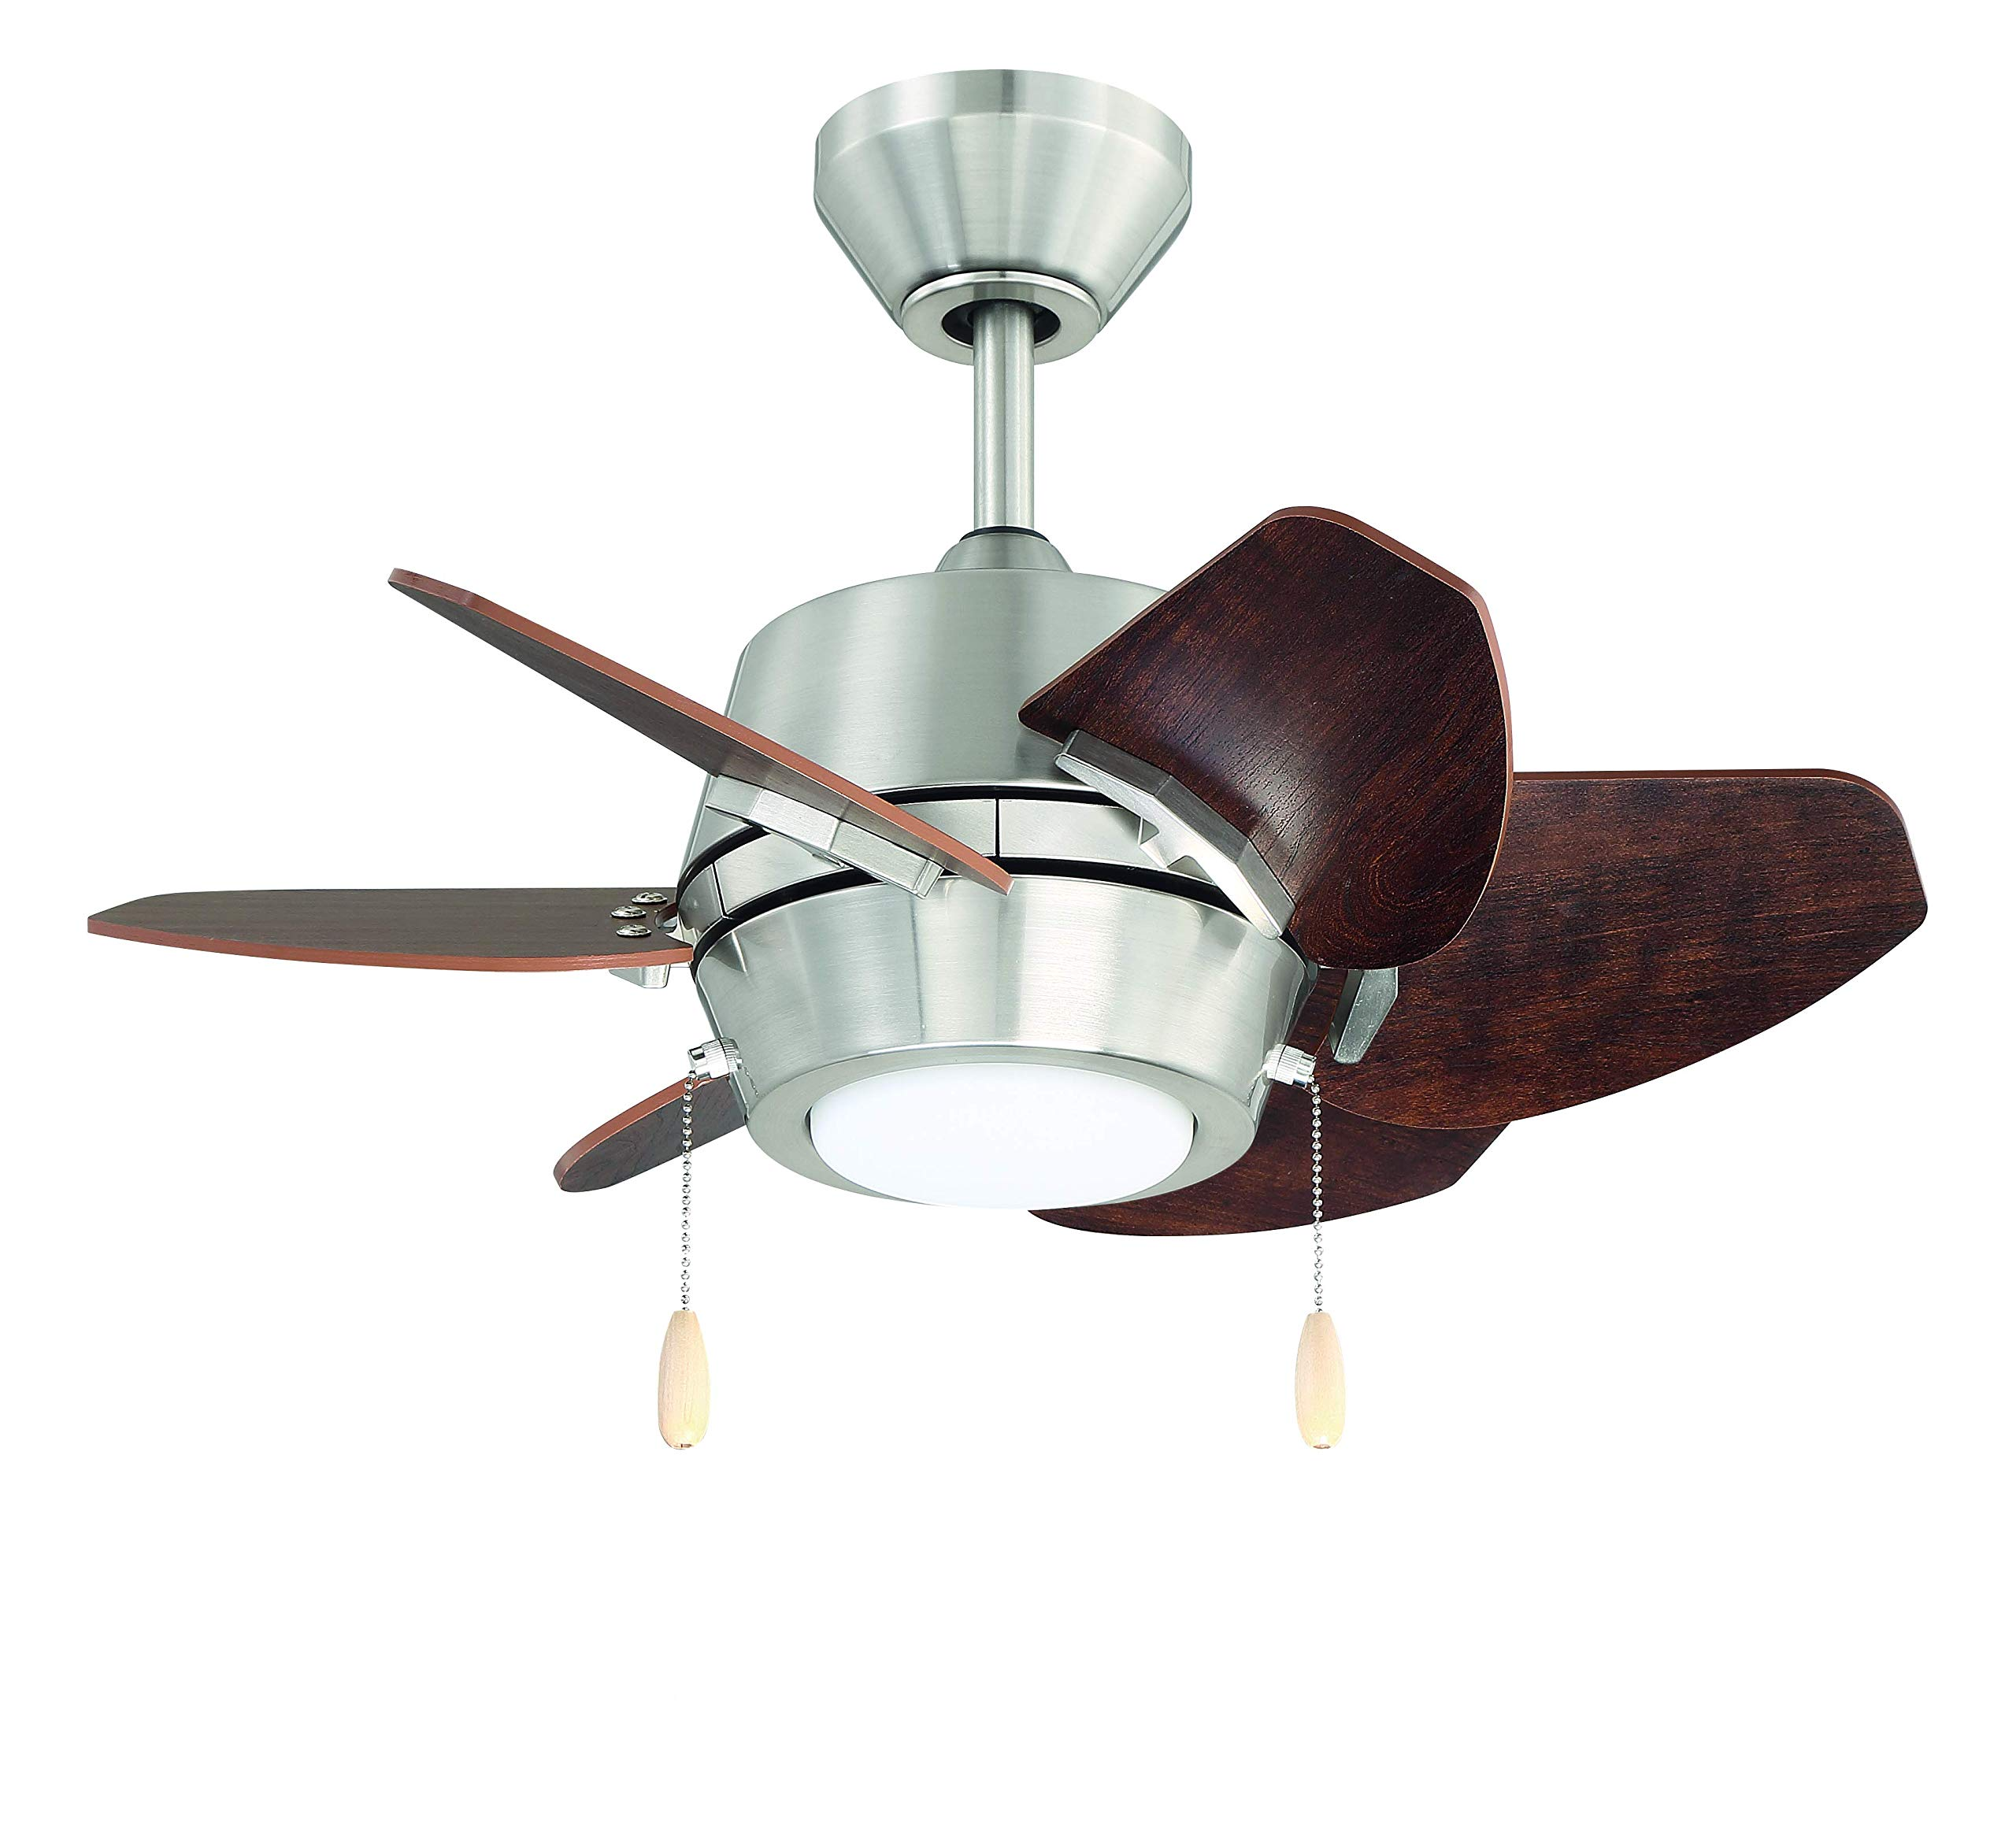 "Litex Industries GA24BNK6L Litex Gaskin Sleek 24""Ceiling Fan Brushed Nickel Finish with 6 Glazed Cherry/Driftwood Reversible Blades, UL Rated"